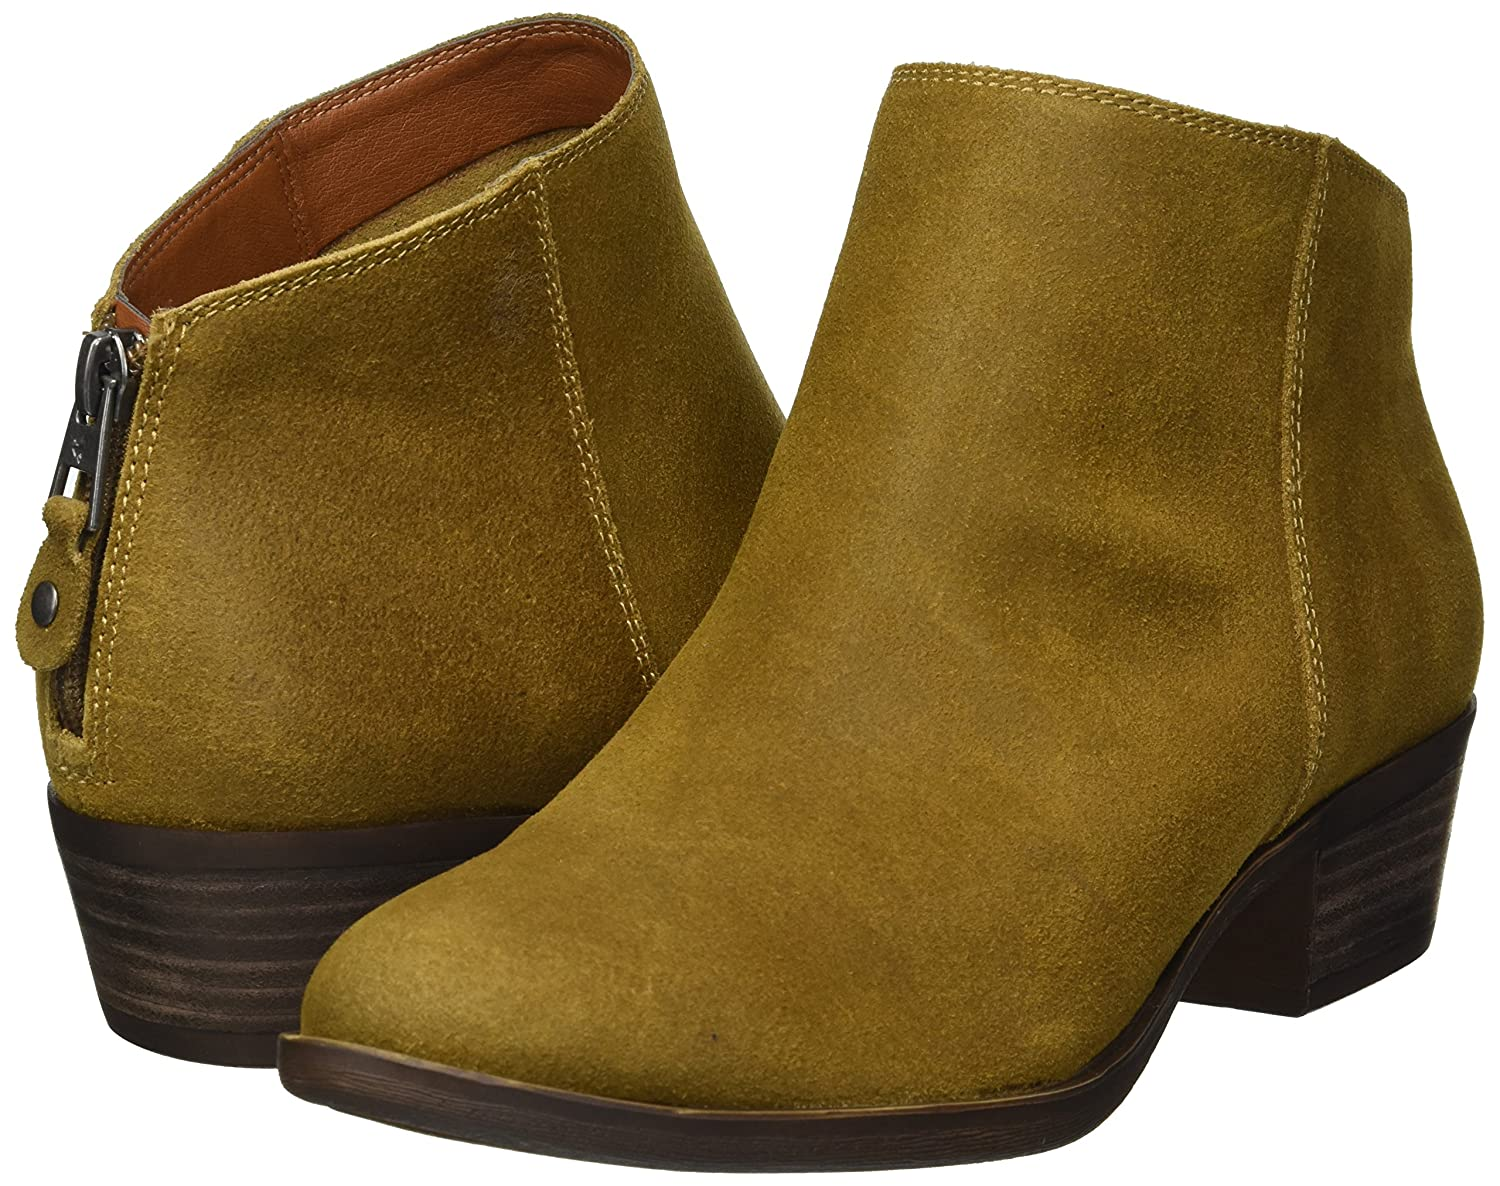 Lucky Brand Women's Bremma Ankle Boot B07C8BX2LM 11 M US|Tapenade